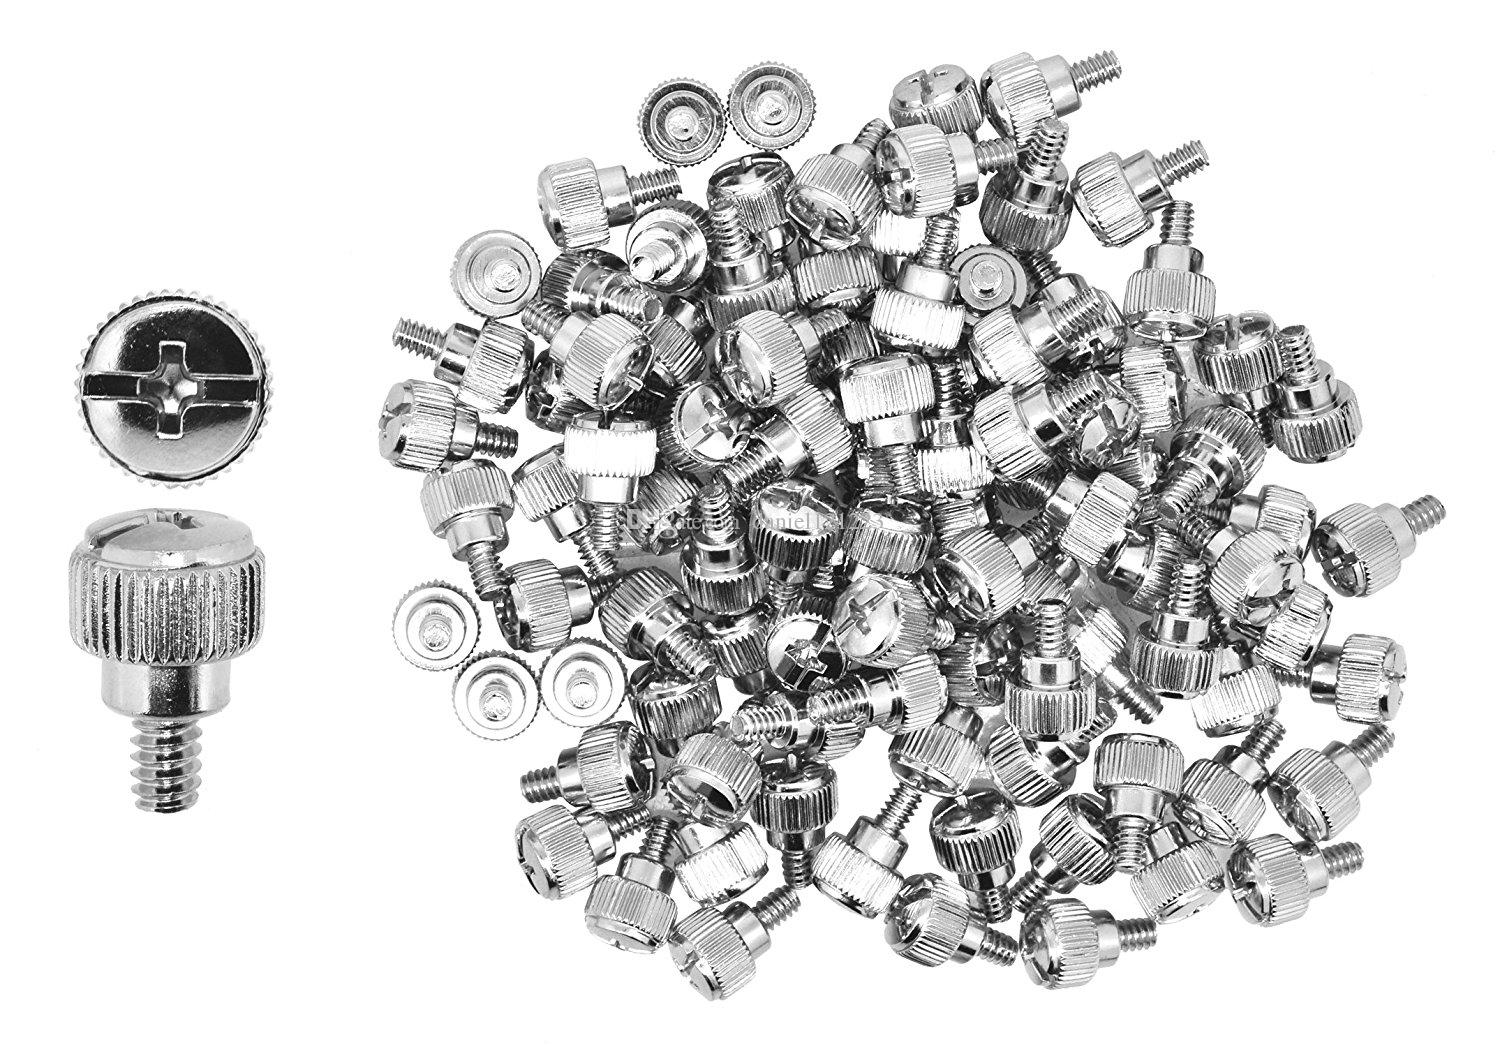 Mudra Crafts Desktop PC Computer Building Case 6-32 Repair Mounting Thumb Screw Assortment Kit, 50 PCs (Silver Chrome)